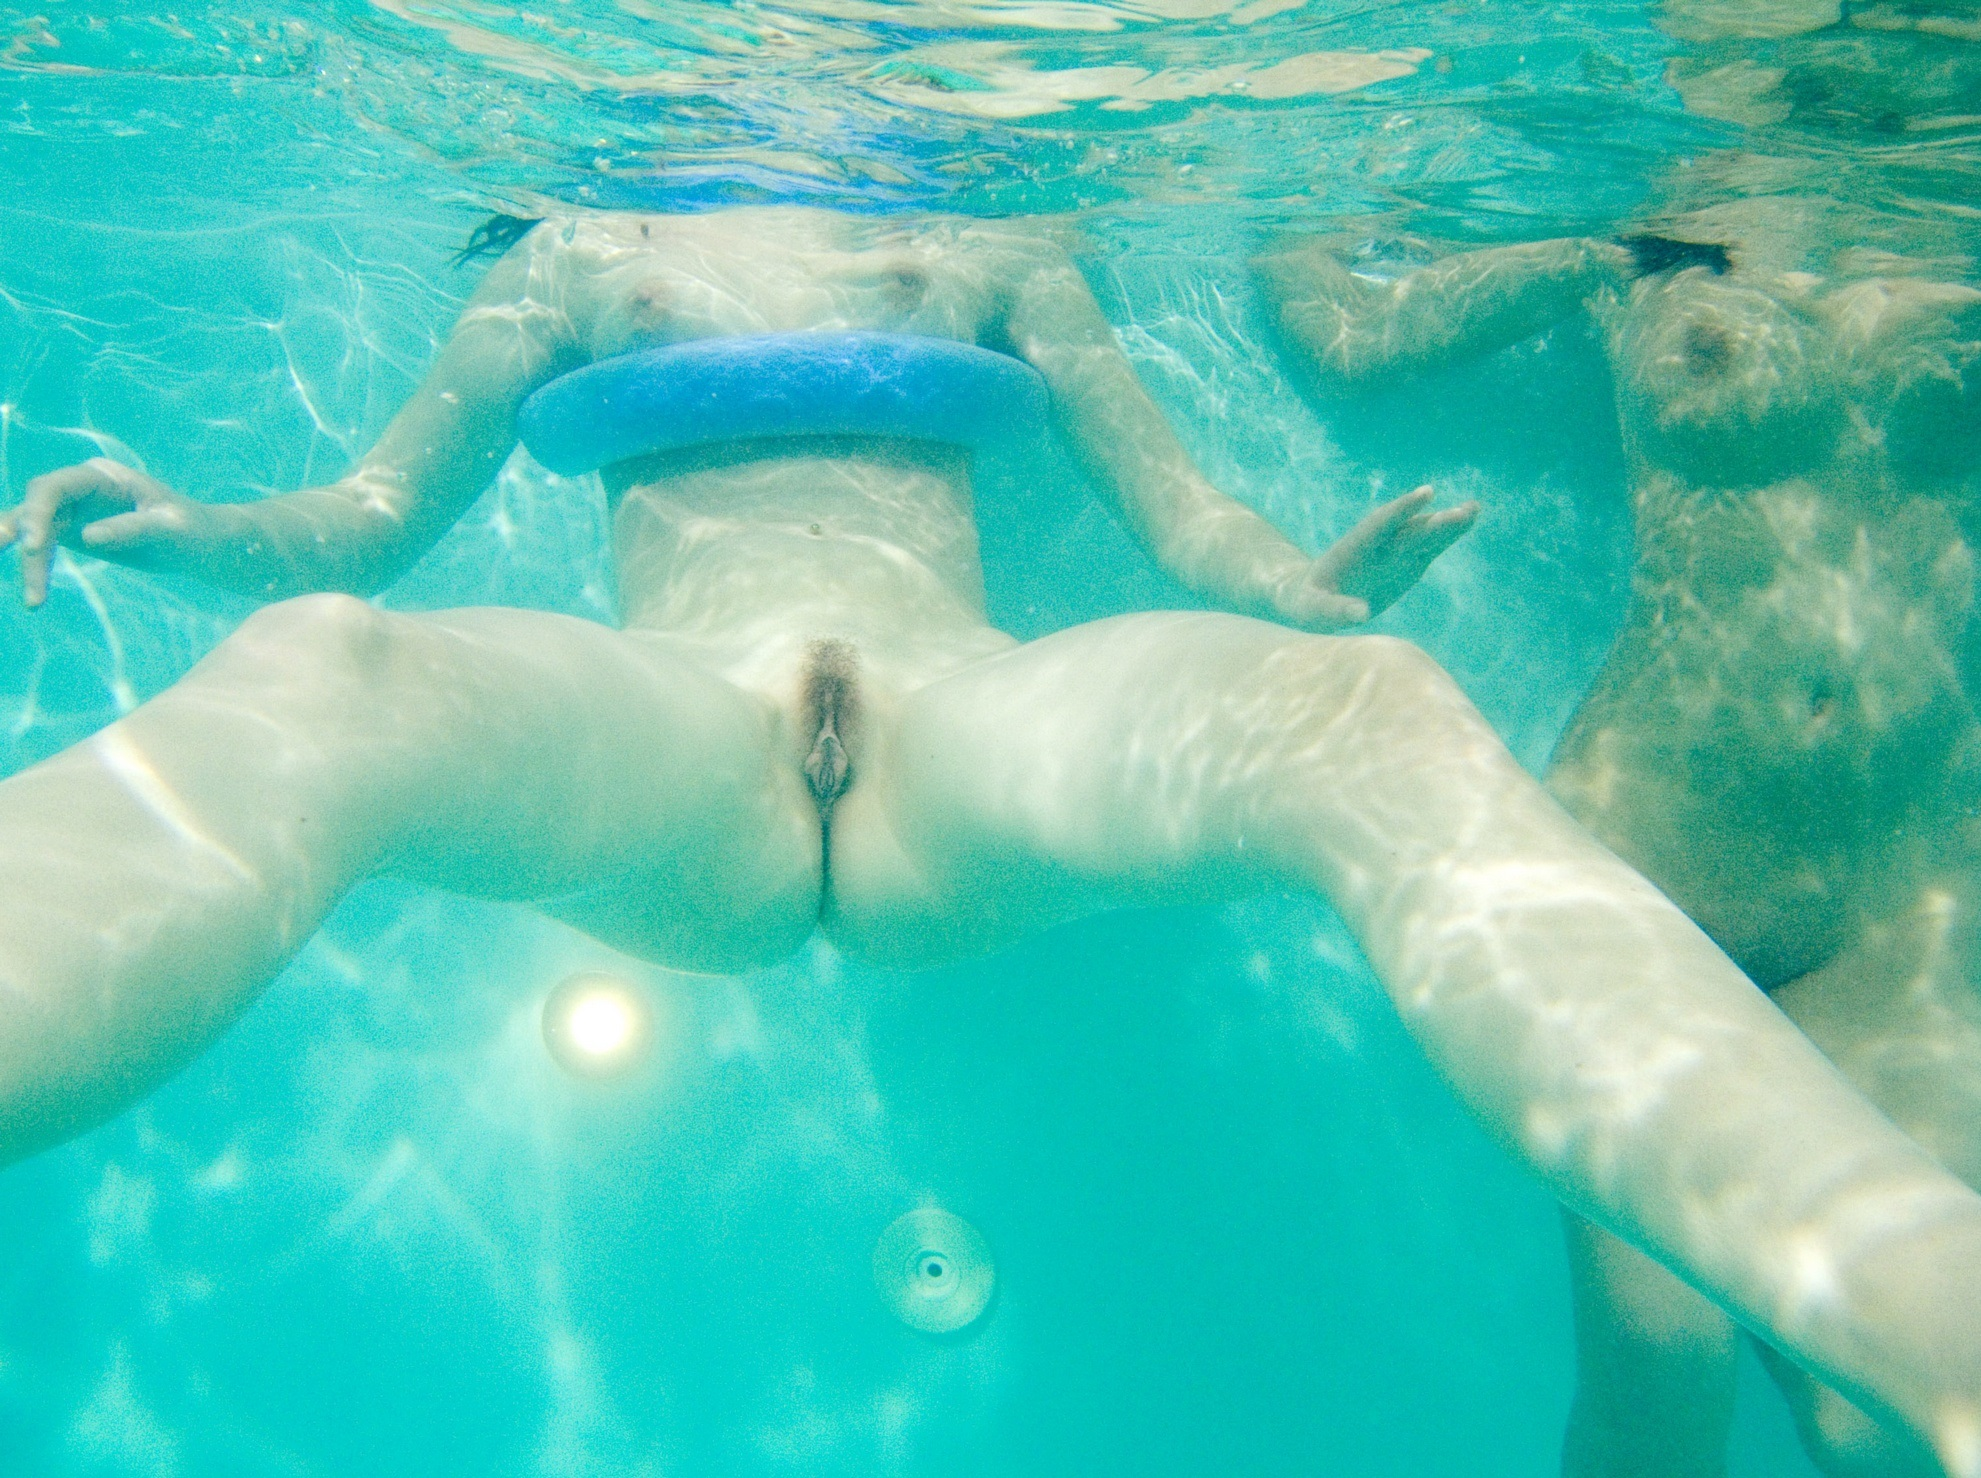 videos of nude women swimming